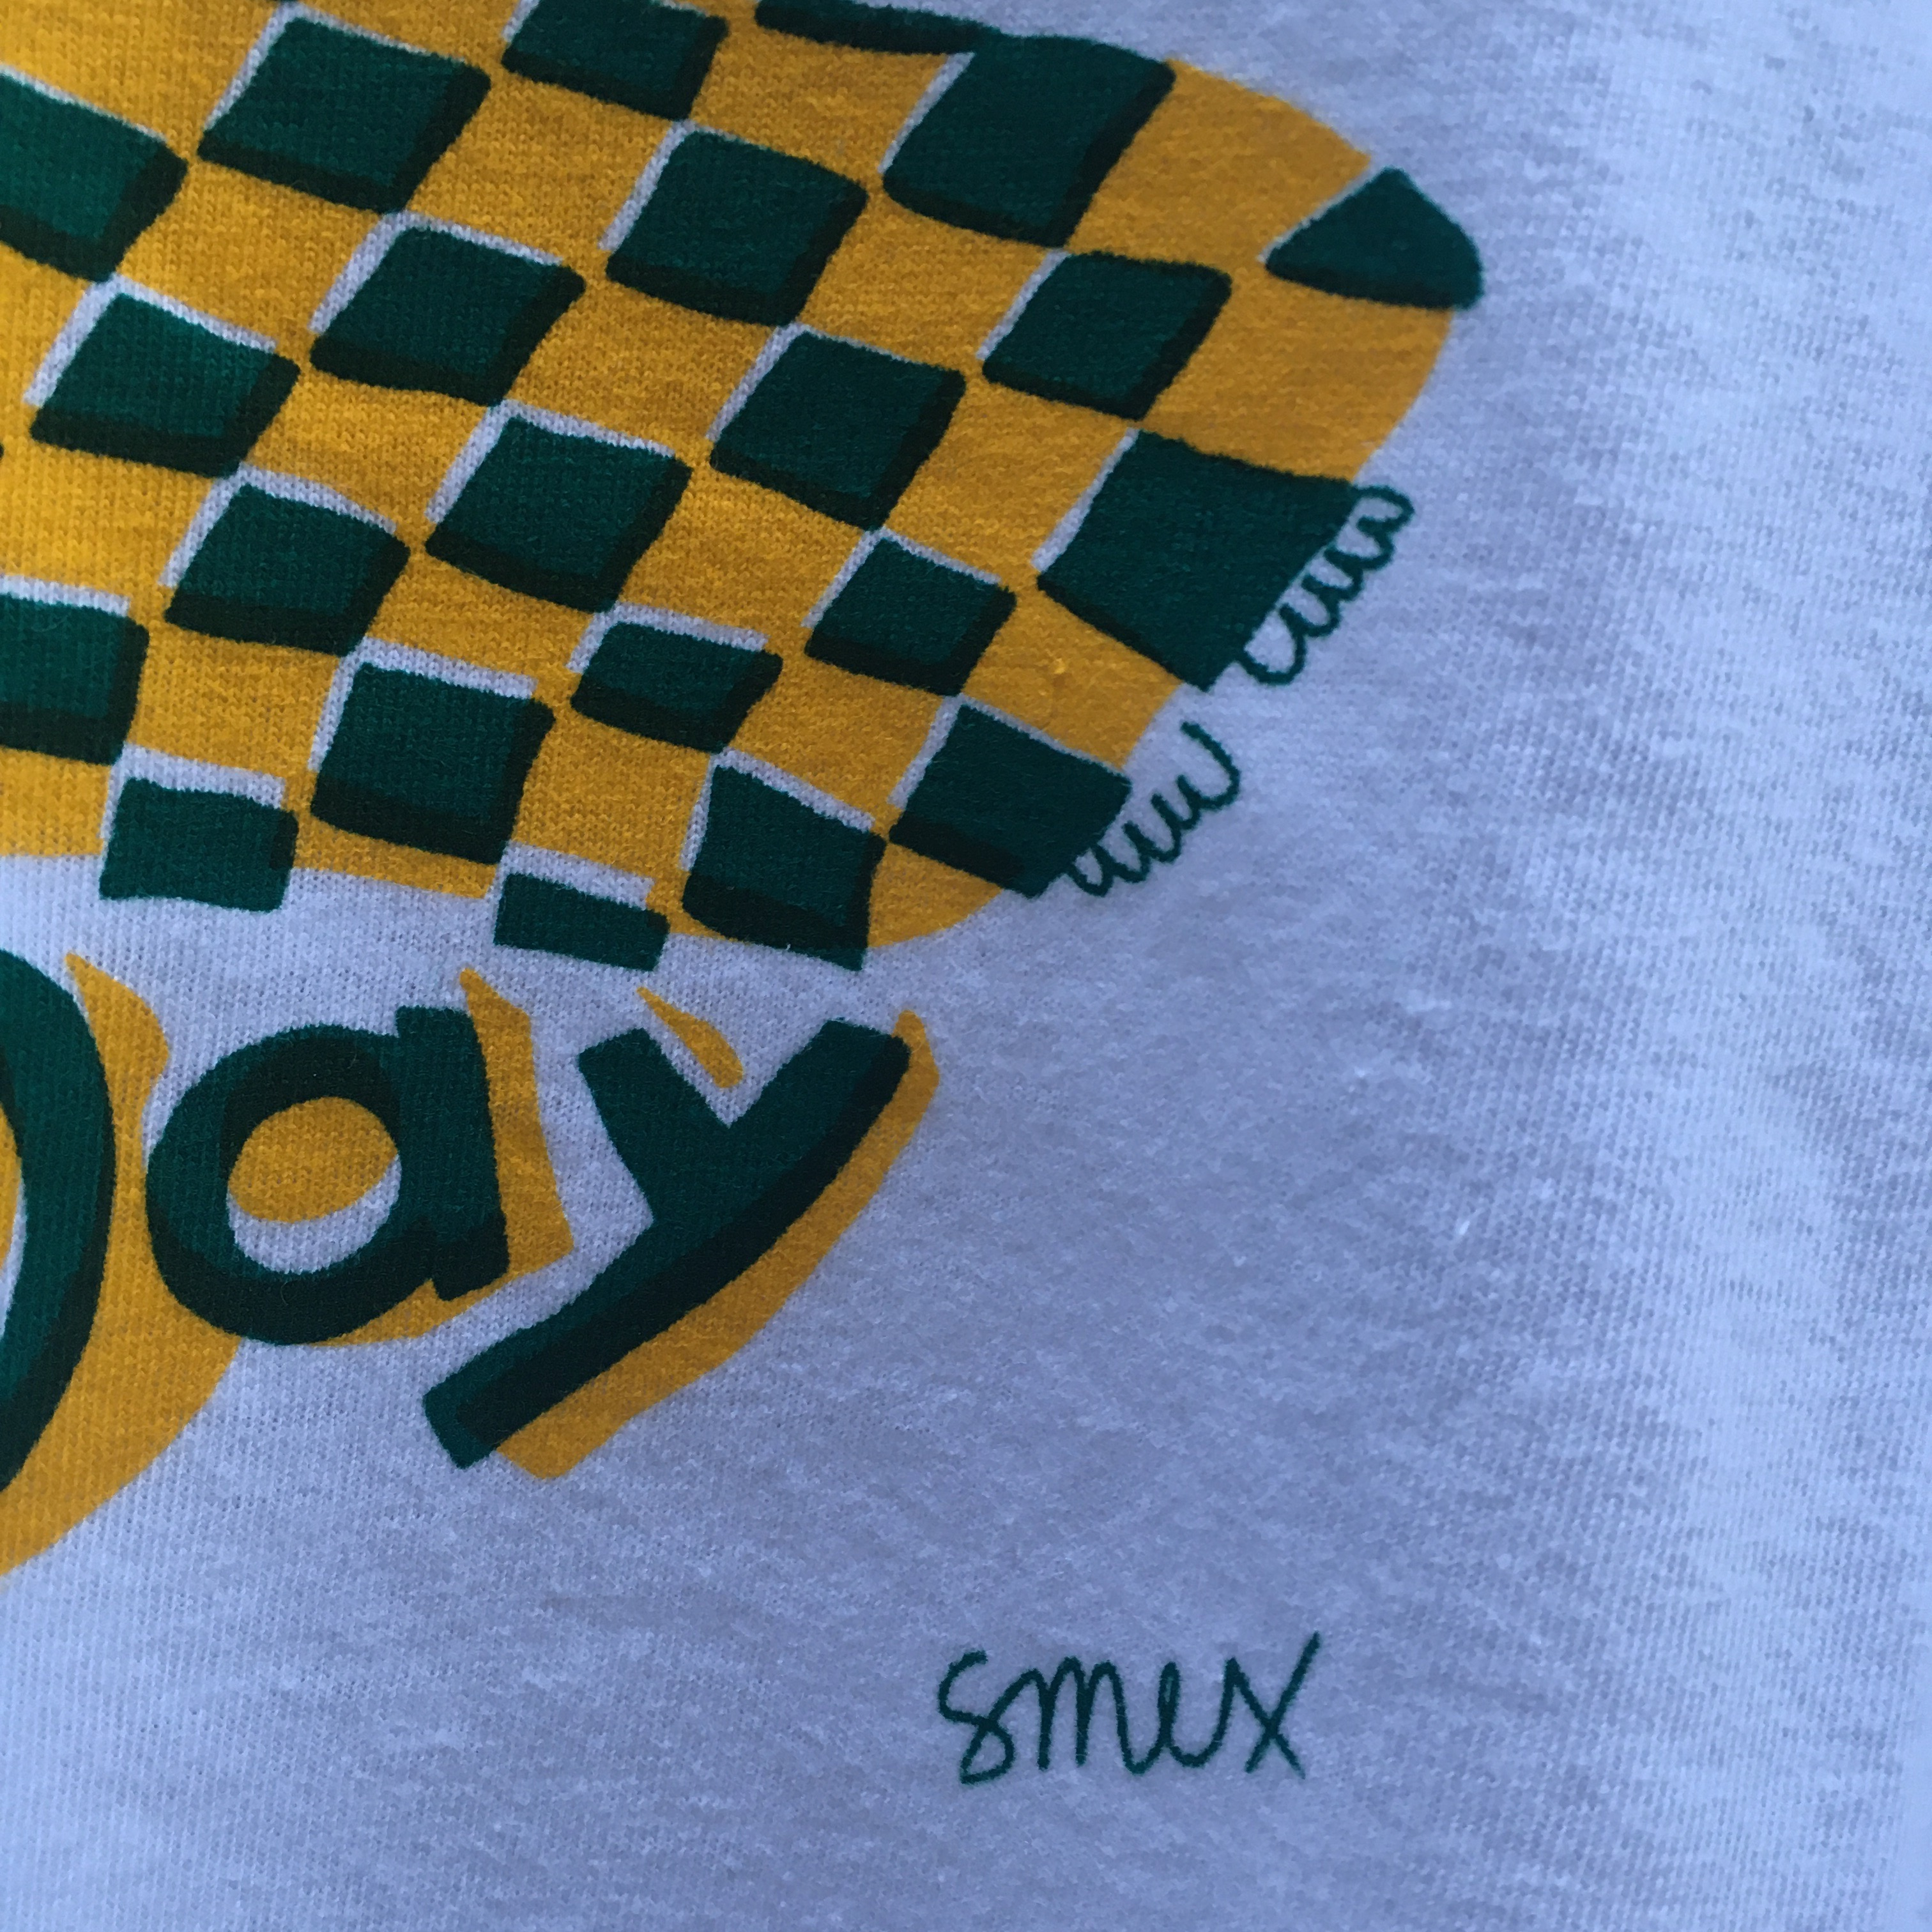 Bed Day Tshirt - Smex